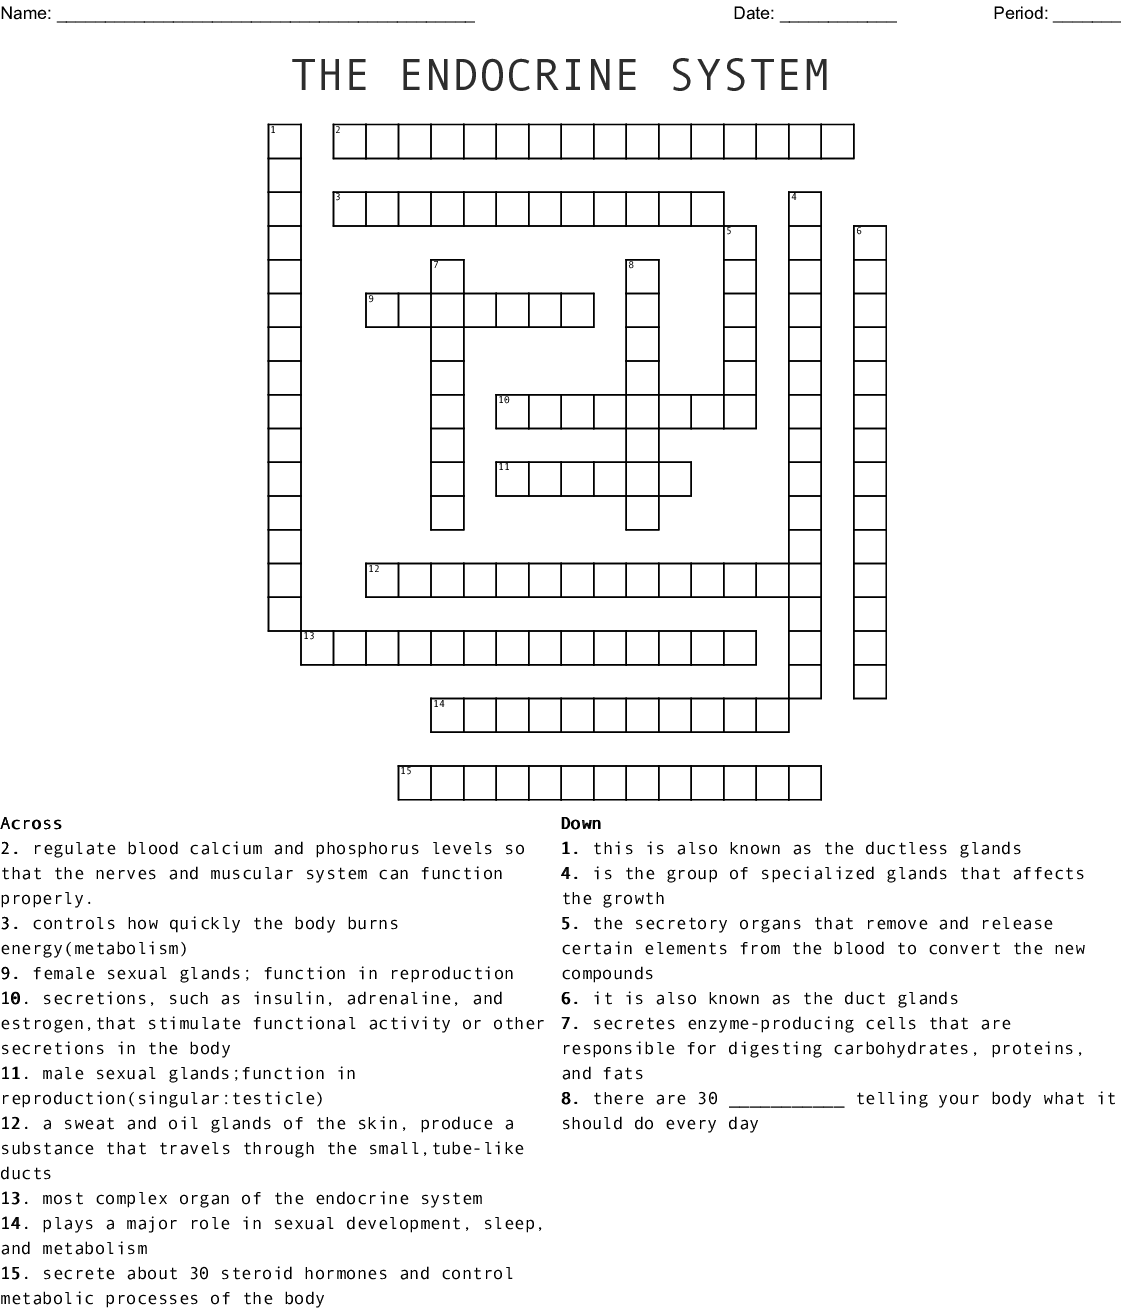 Endocrine System Crossword